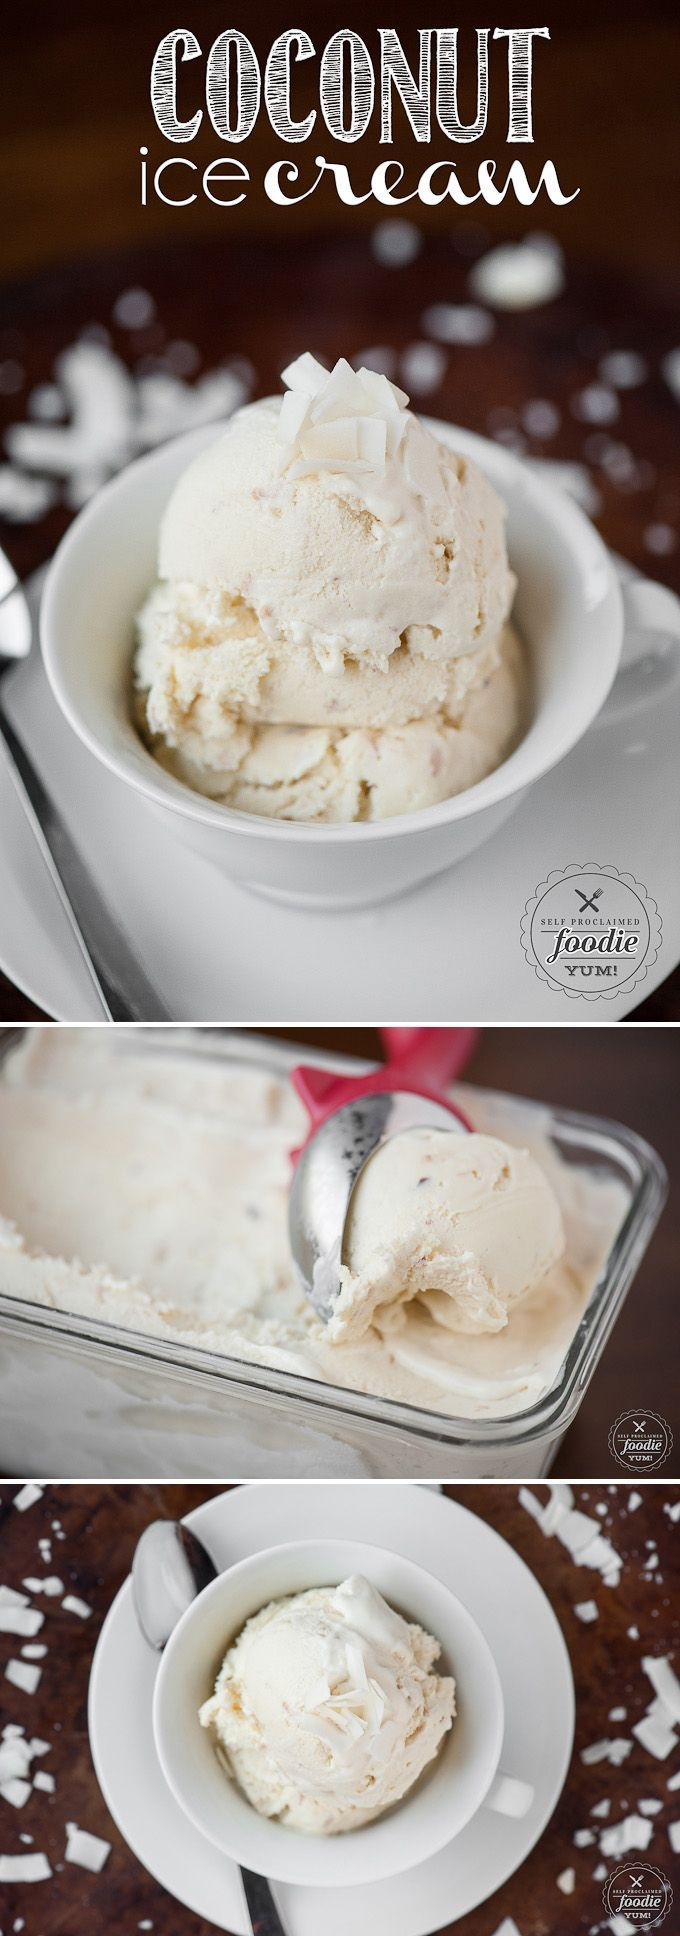 This delicious and creamy Coconut Ice Cream is made the old fashioned way with toasted coconut and both heavy cream as well as coconut cream & coconut milk.